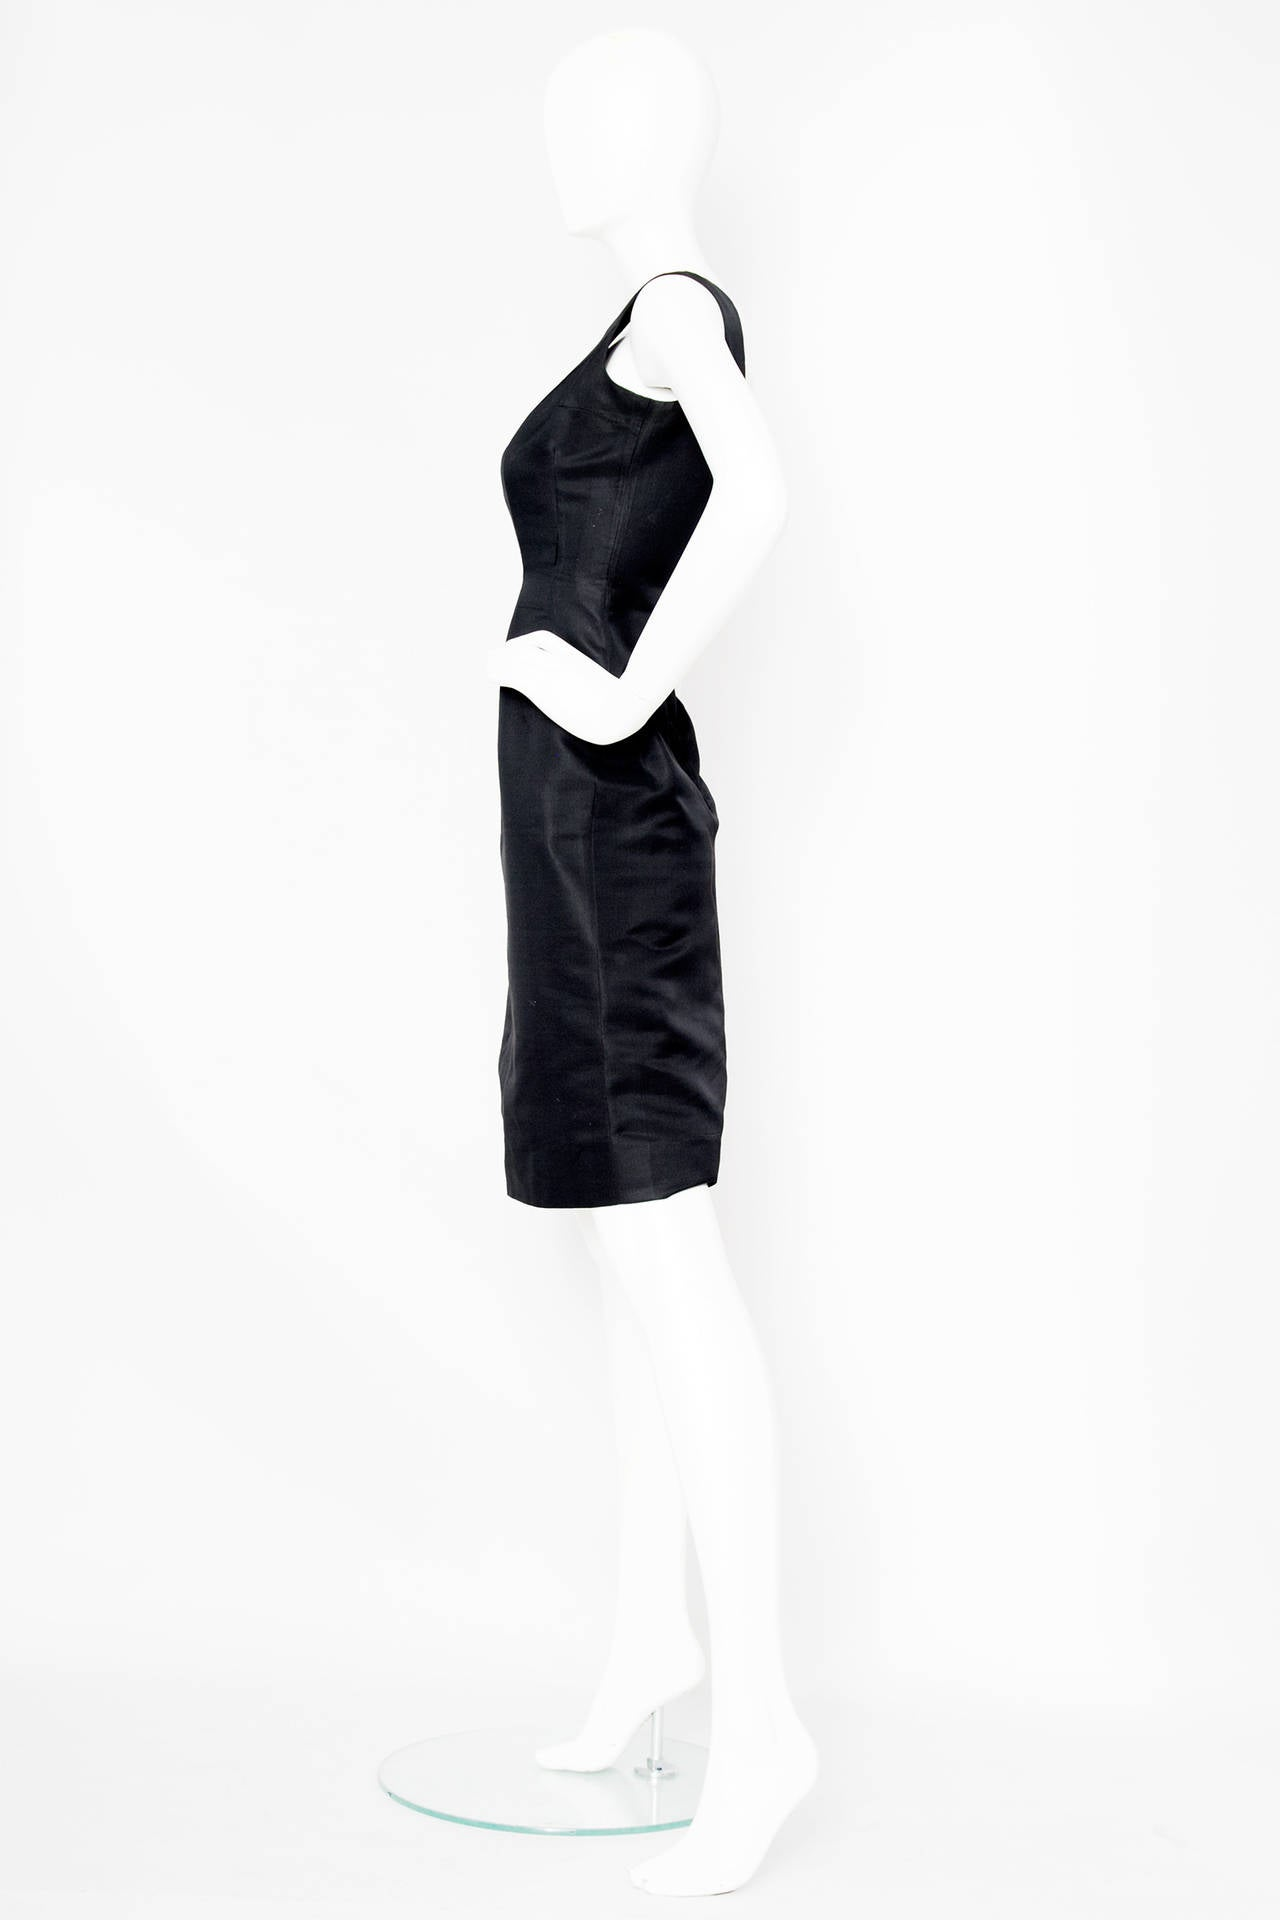 Rare 1960s Pierre Cardin Haute Couture Little Black Dress In Good Condition For Sale In Copenhagen, DK